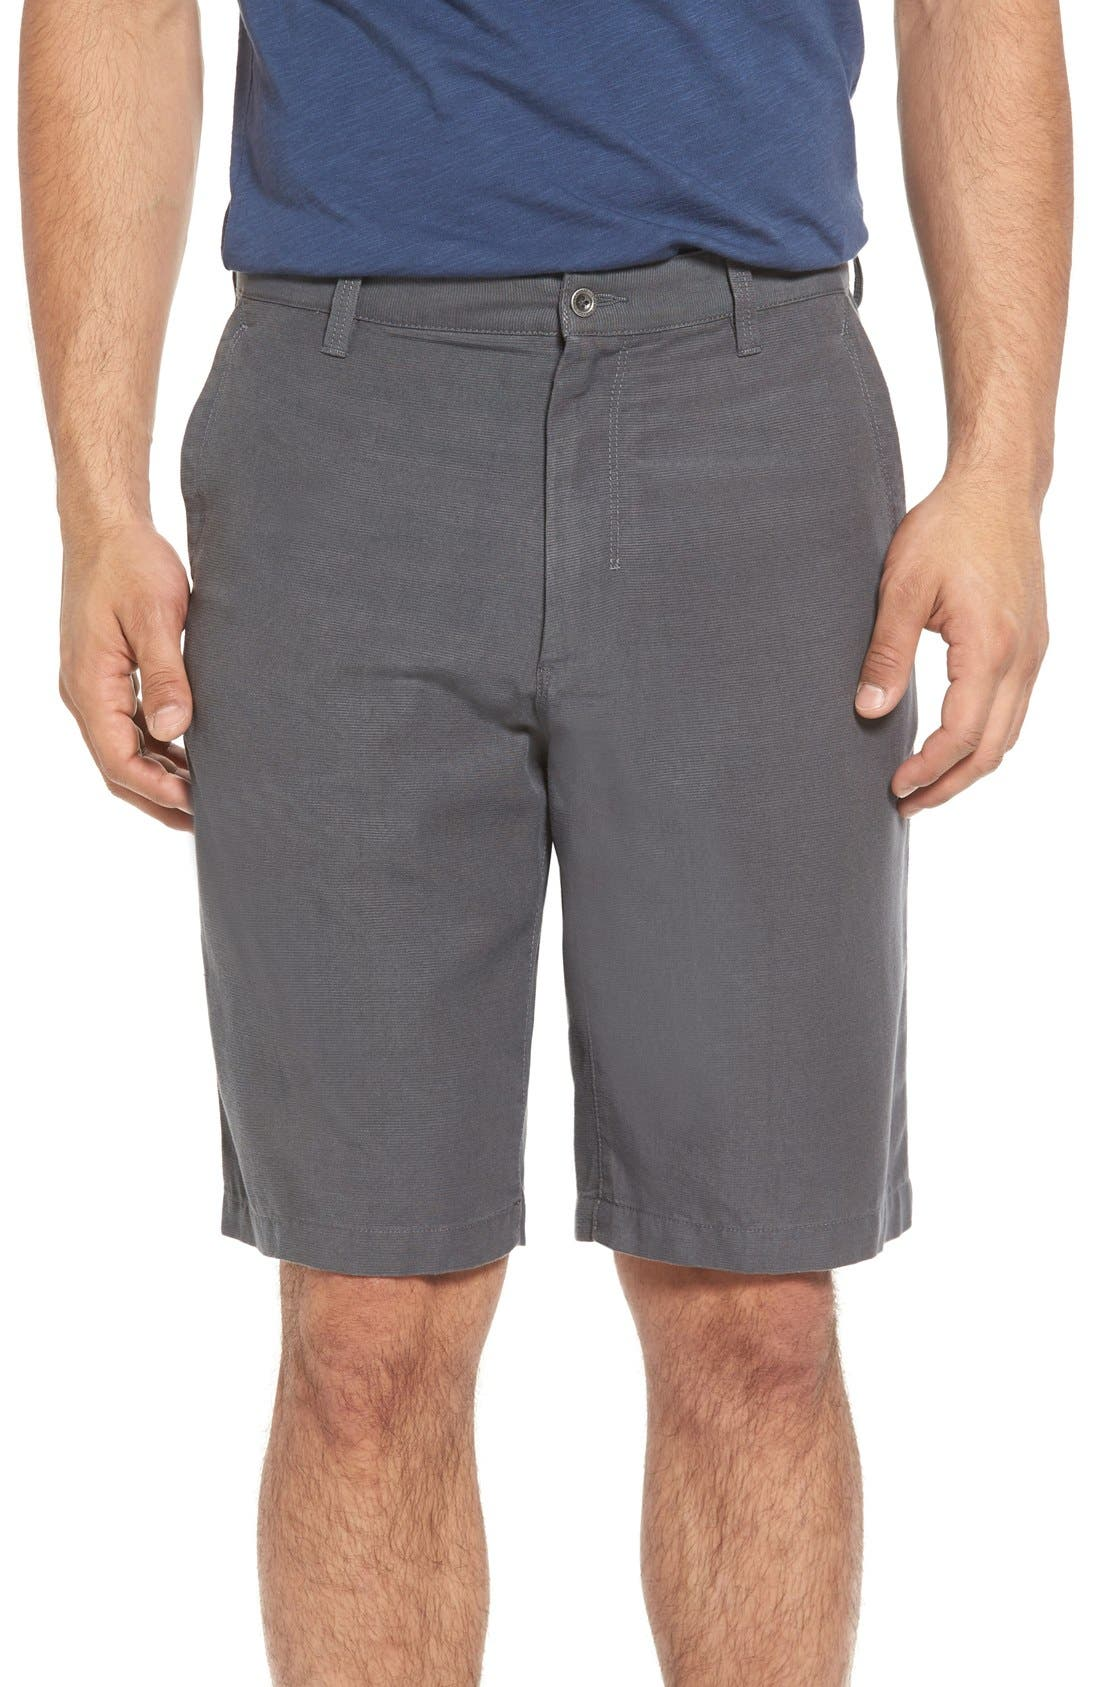 Main Image - Tommy Bahama 'Surfclub' Shorts